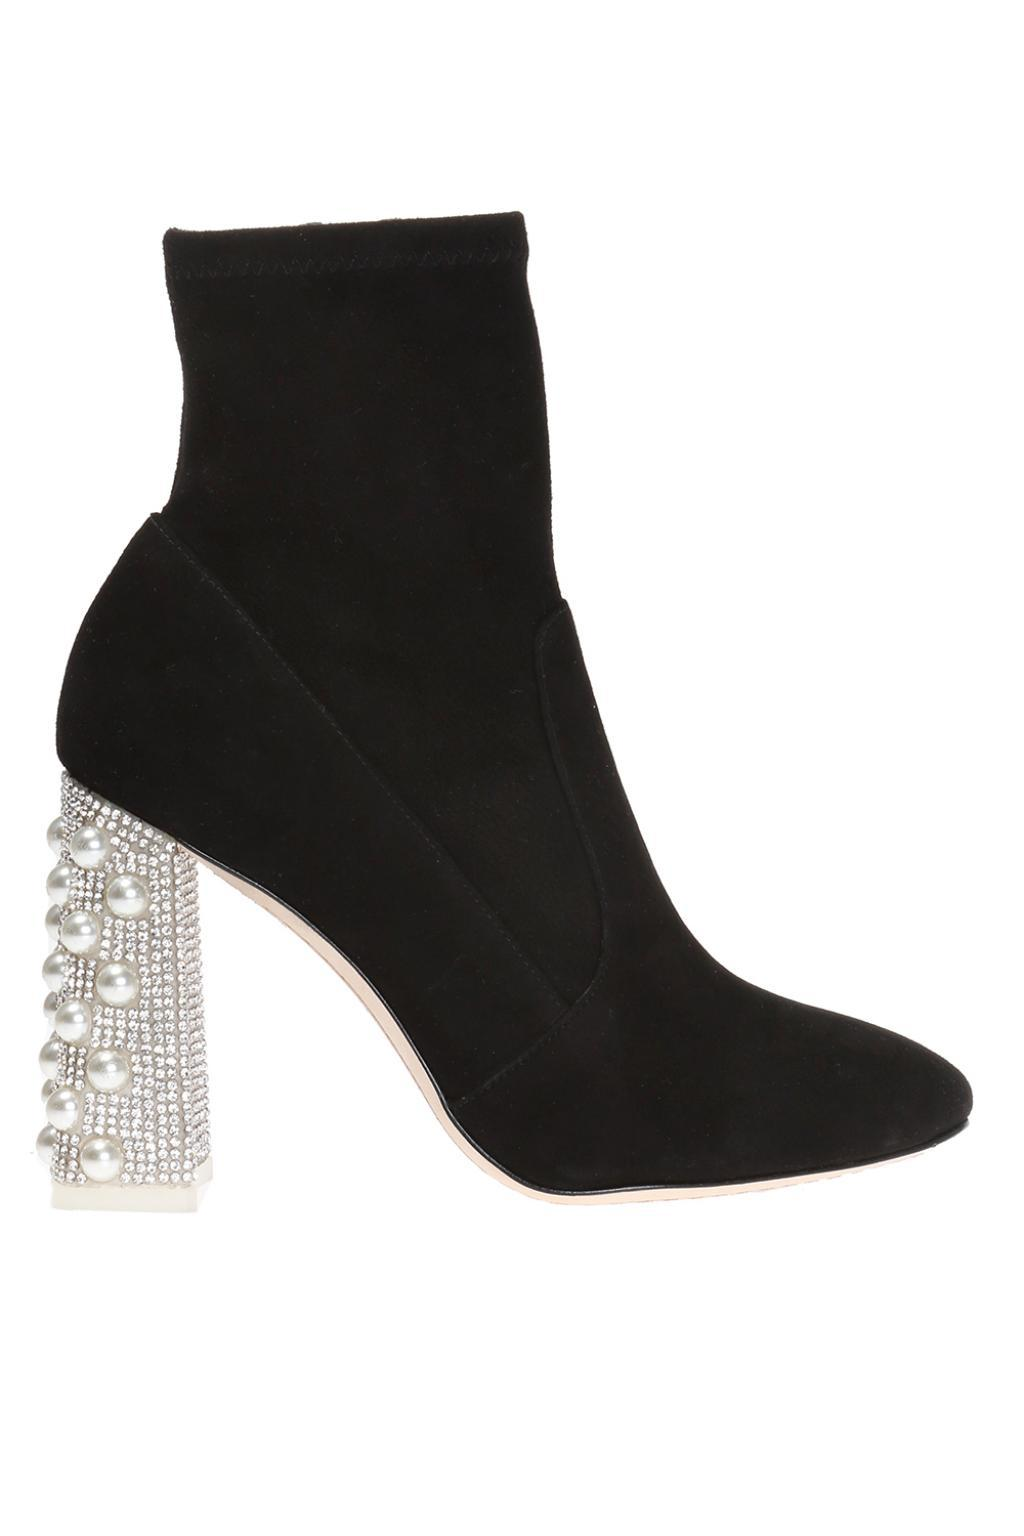 SOPHIA WEBSTER Felicity Mid Ankle Suede Sock Boots